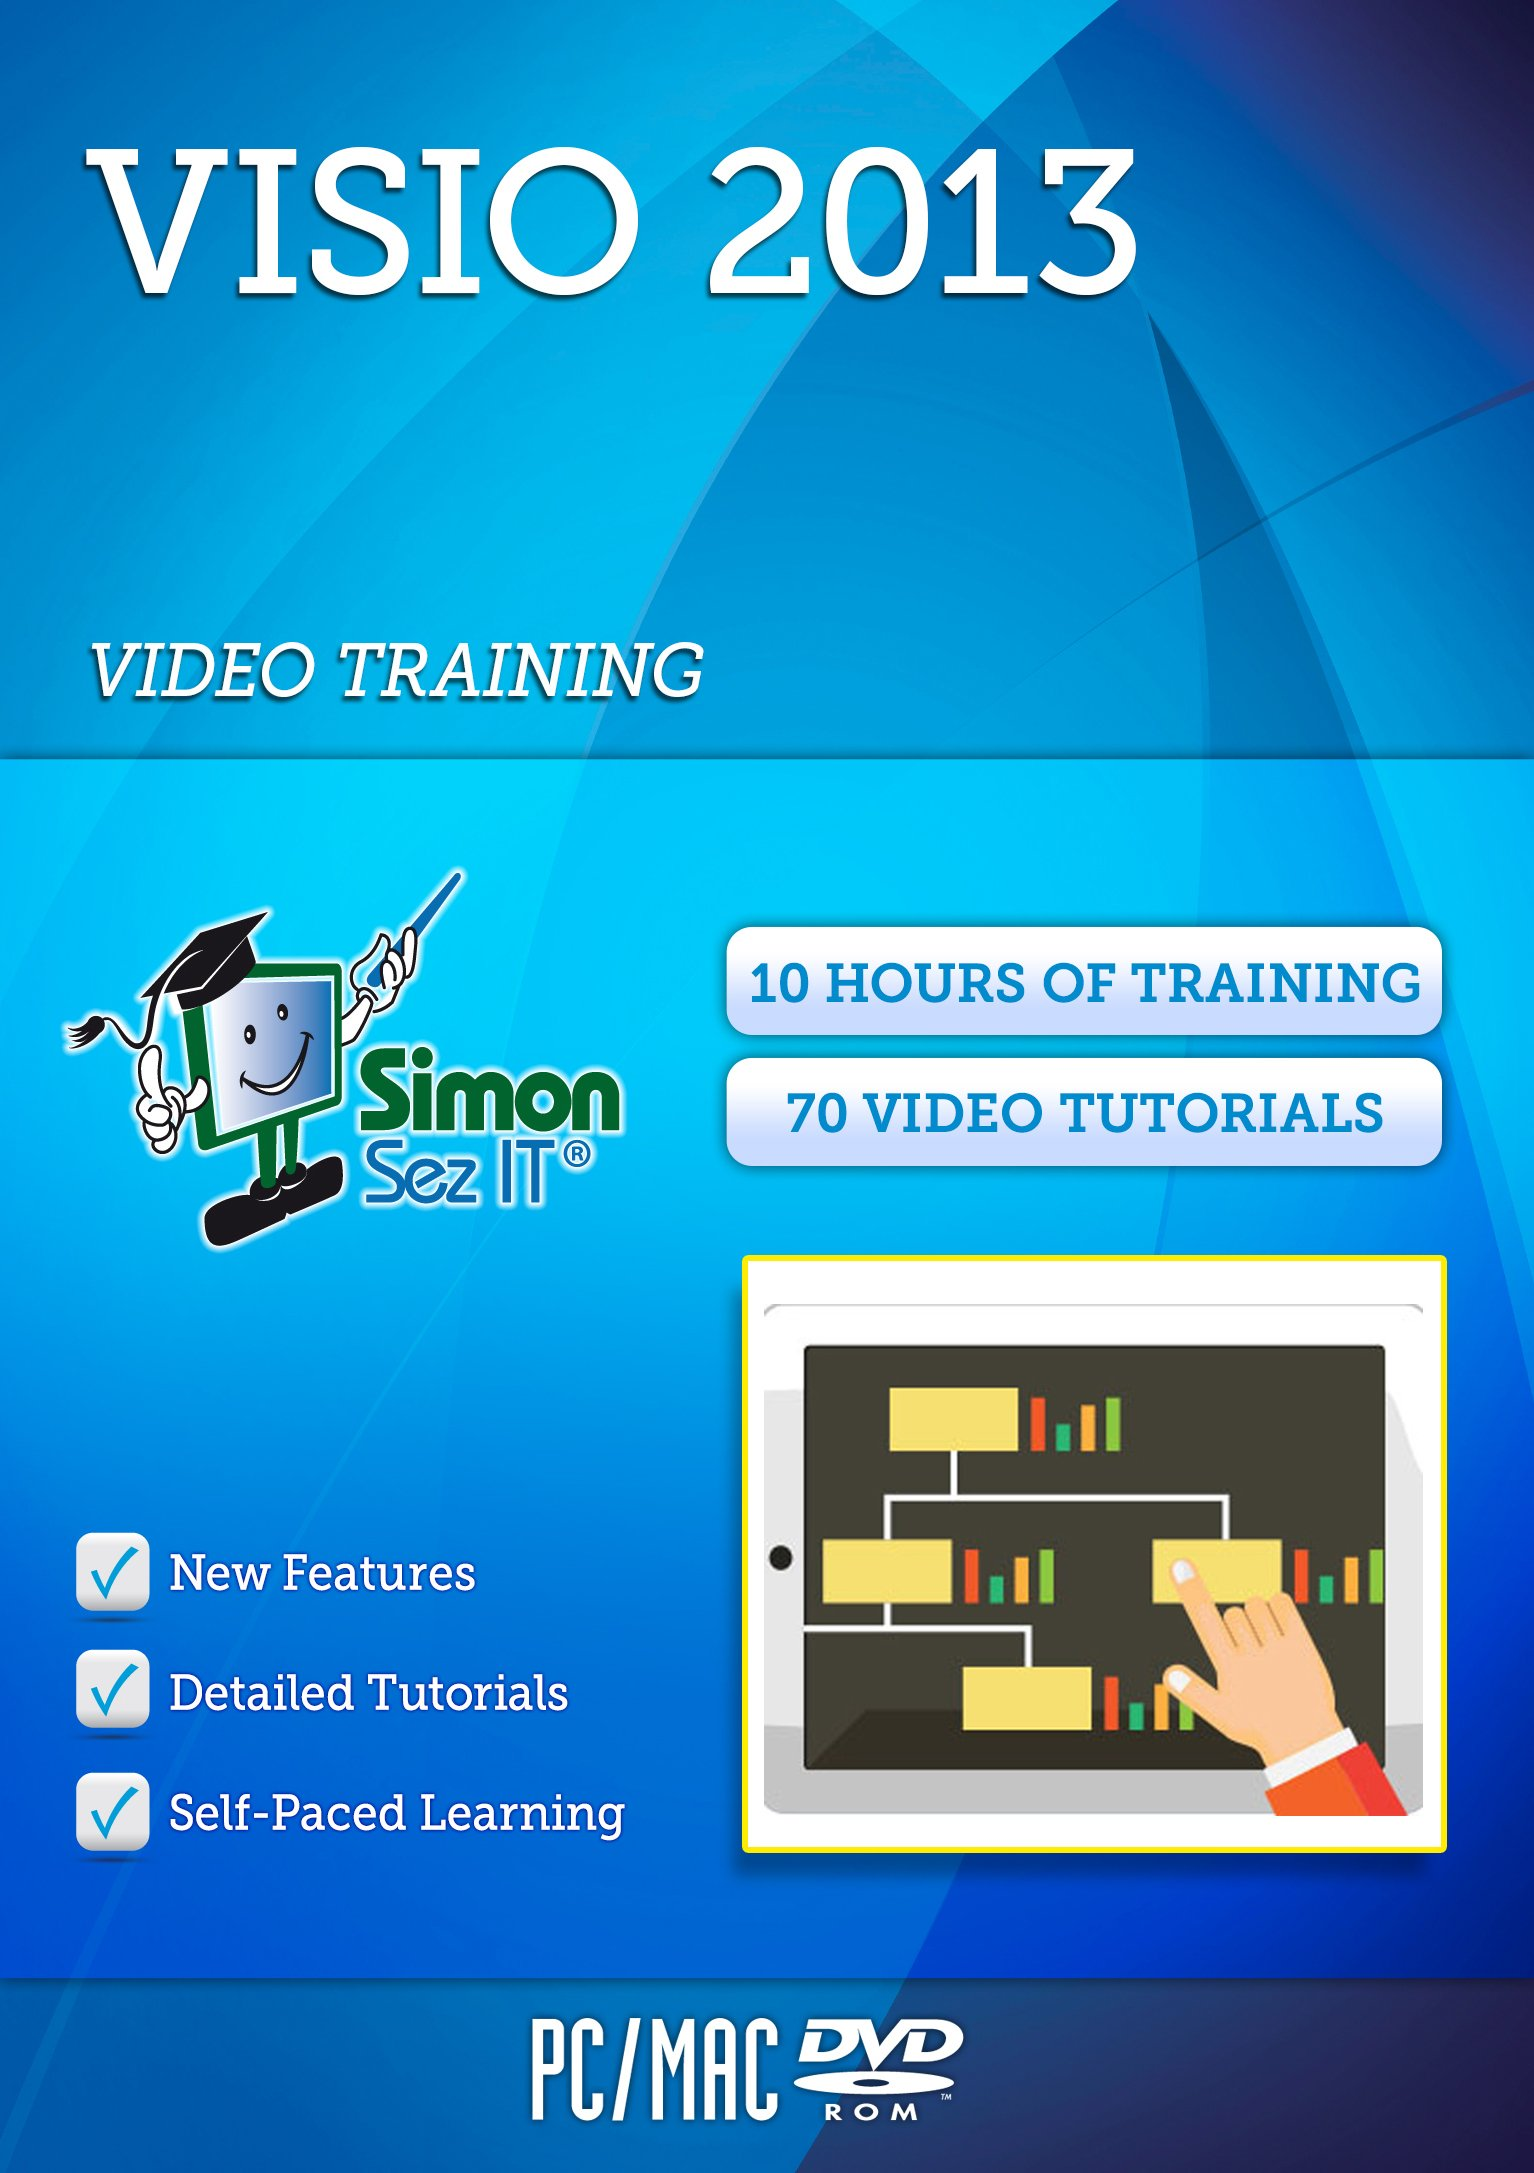 Visio 2013 Training Course For Beginners - Video Tutorials & Lectures By A Professional Instructor - Exercise Files Included by Simon Sez IT